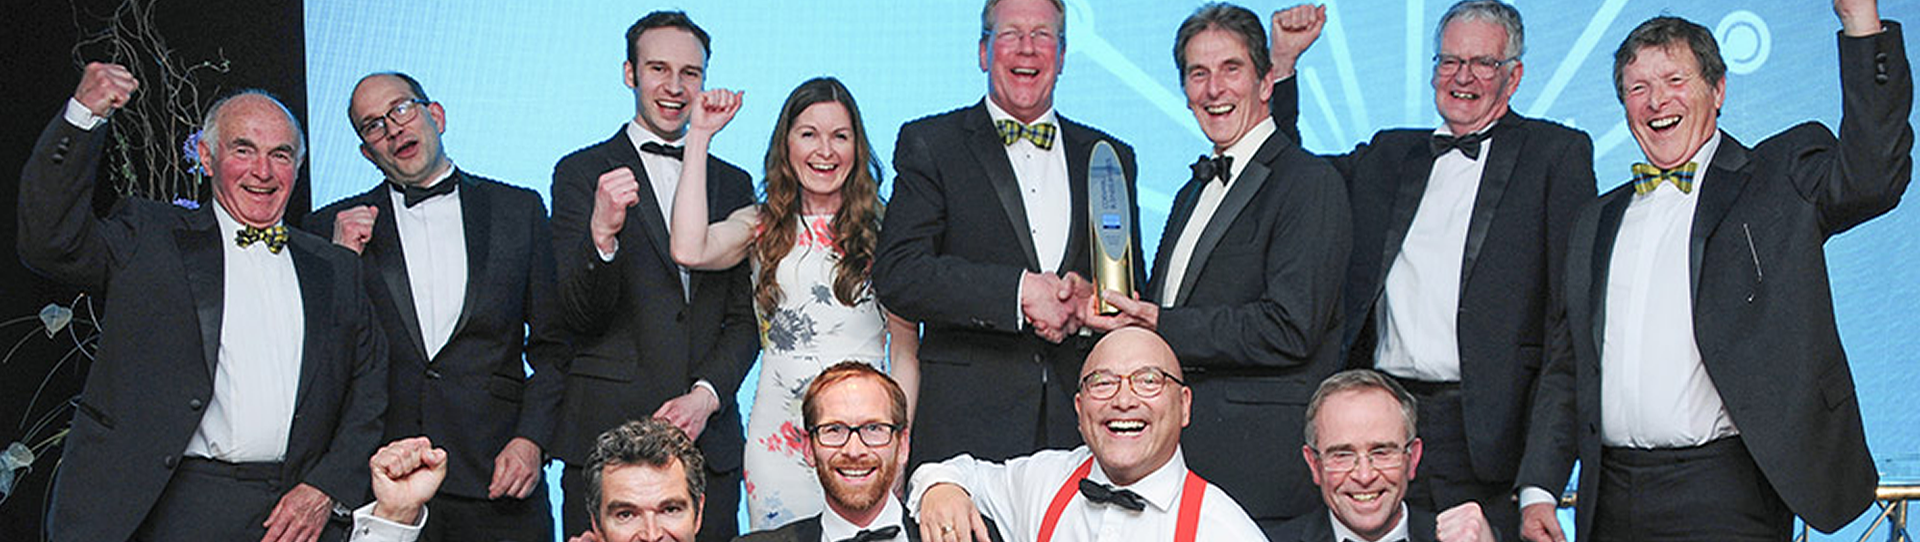 Cornwall Business Awards 2018